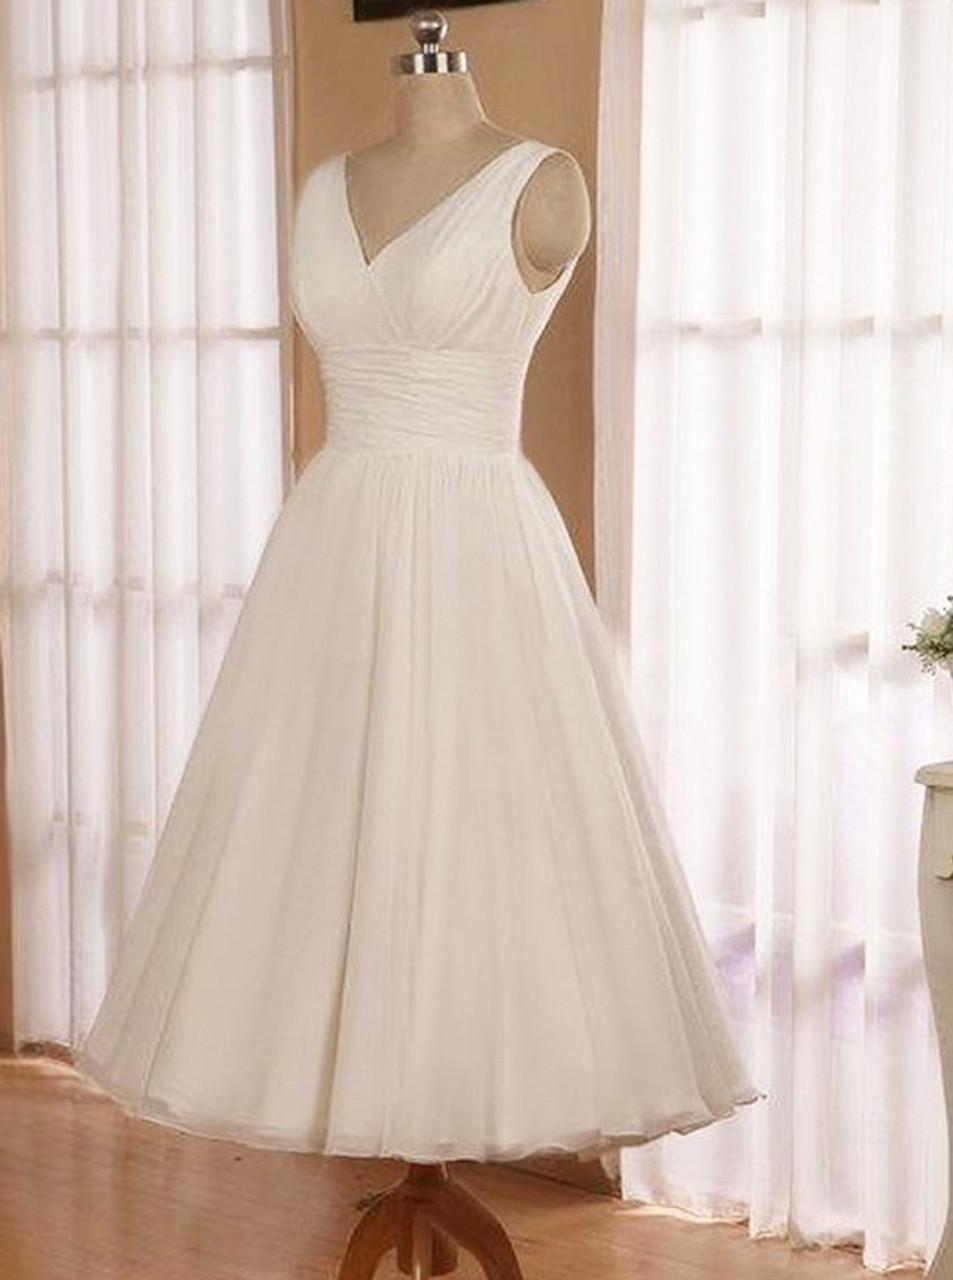 Tea Length Short Wedding Dress Wedding Reception Dress Simple Casual